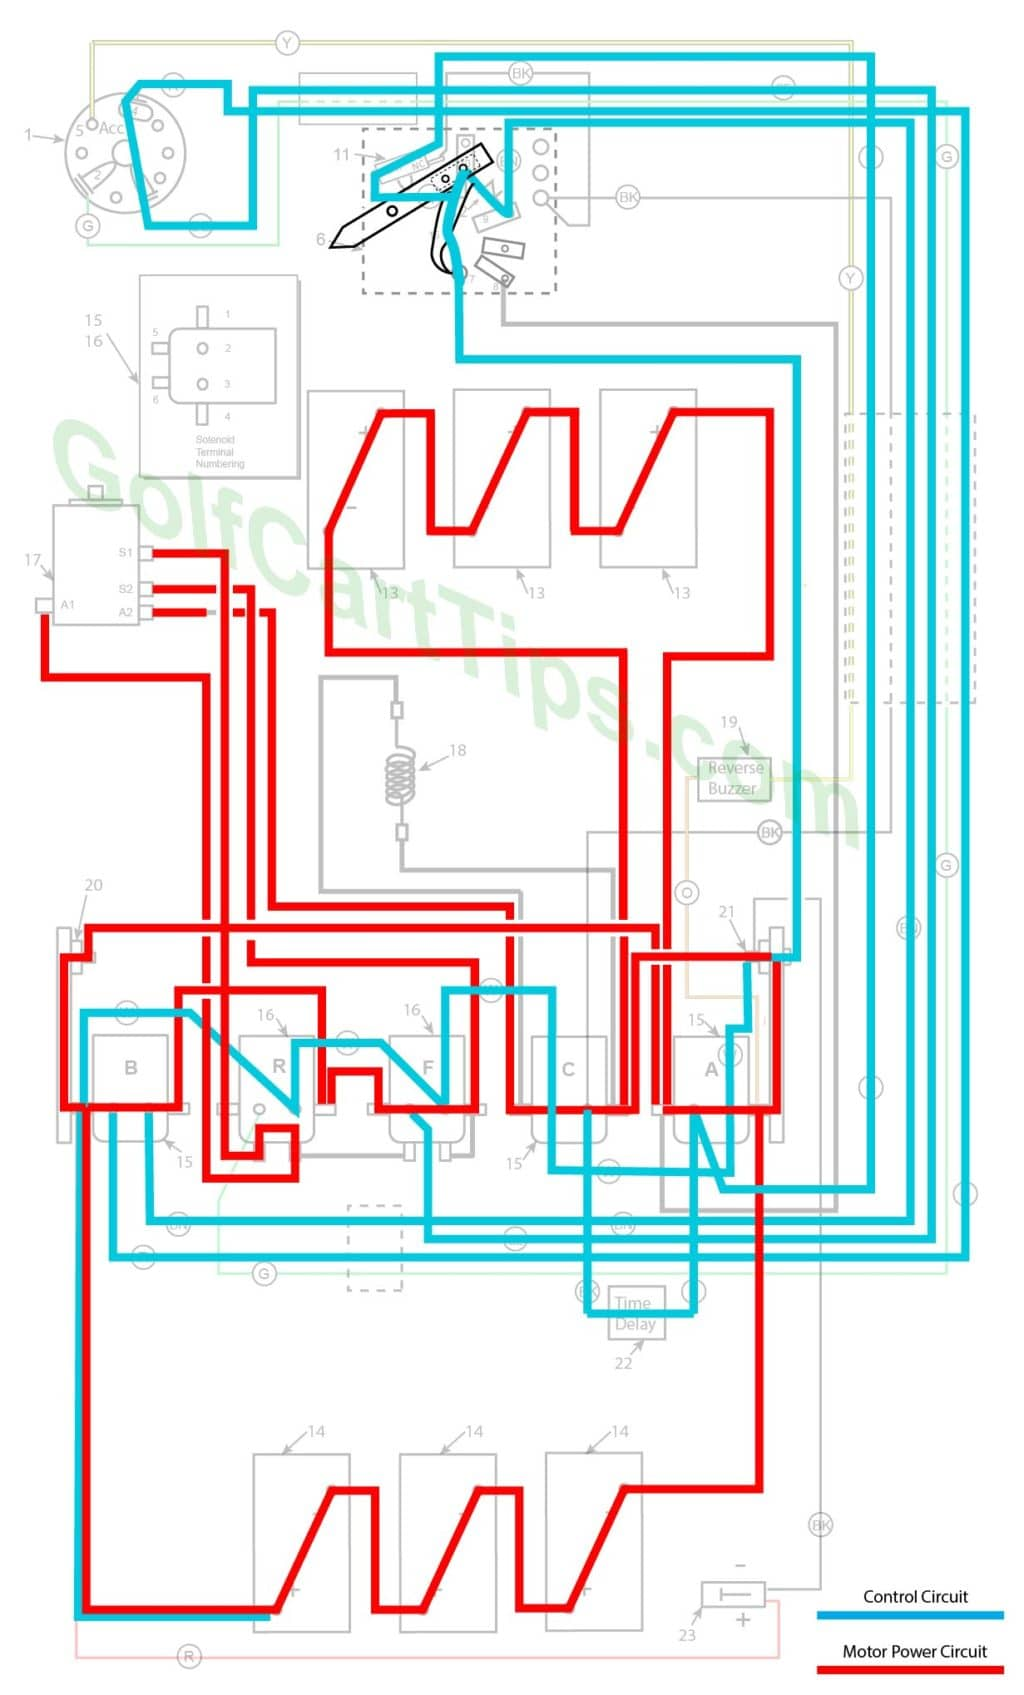 Harley Davidson Golf Cart Wiring Diagrams 19791982 Dede4 1982 Diagram After Approximately 2 Seconds The Time Delay Kicks In And Energizes Solenoid C Bypassing Resistor Providing A Full 36 Volt Charge To